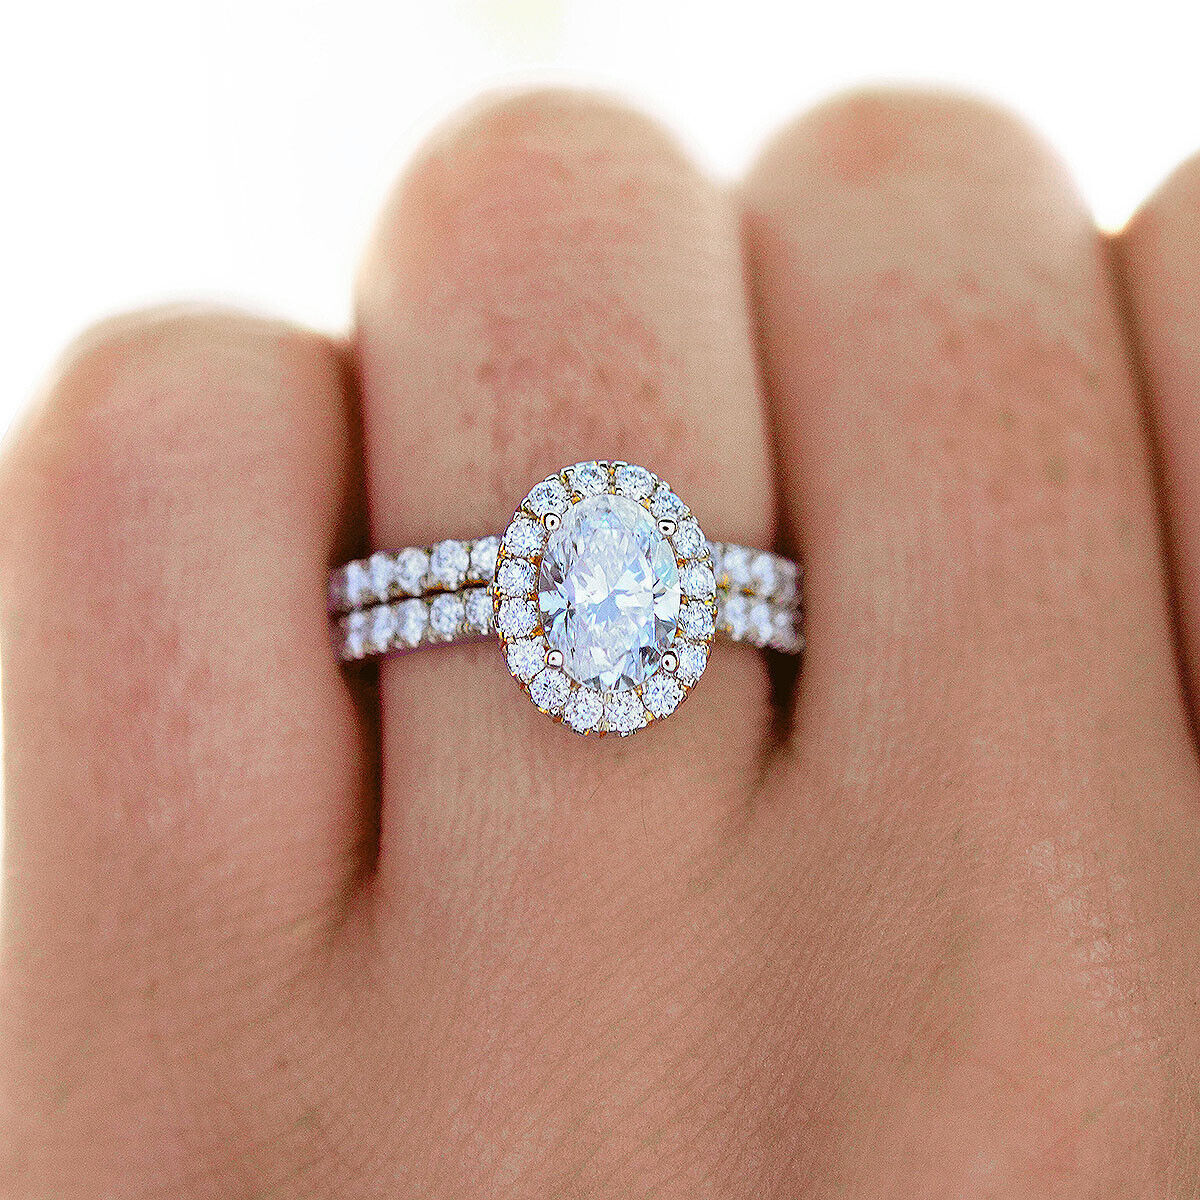 3.00 TCW Natural Oval Cut Halo Pave Diamond Engagement Wedding Set - GIA 1